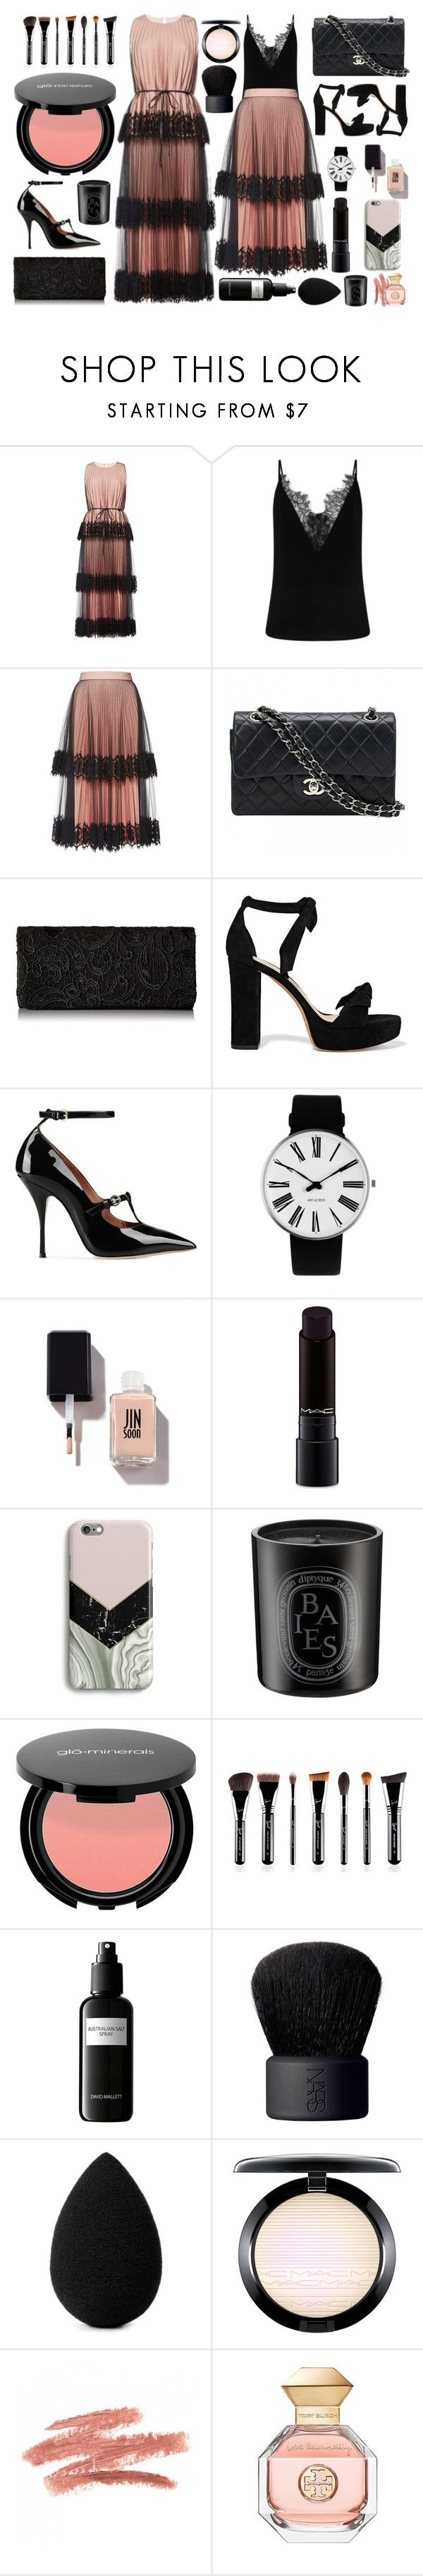 """Peach + Black"" by cherieaustin on Polyvore featuring Christopher Kane, Chanel, Alexandre Birman, RED Valentino, Rosendahl, MAC Cosmetics, Harper & Blake, Diptyque, David Mallett and NARS Cosmetics"